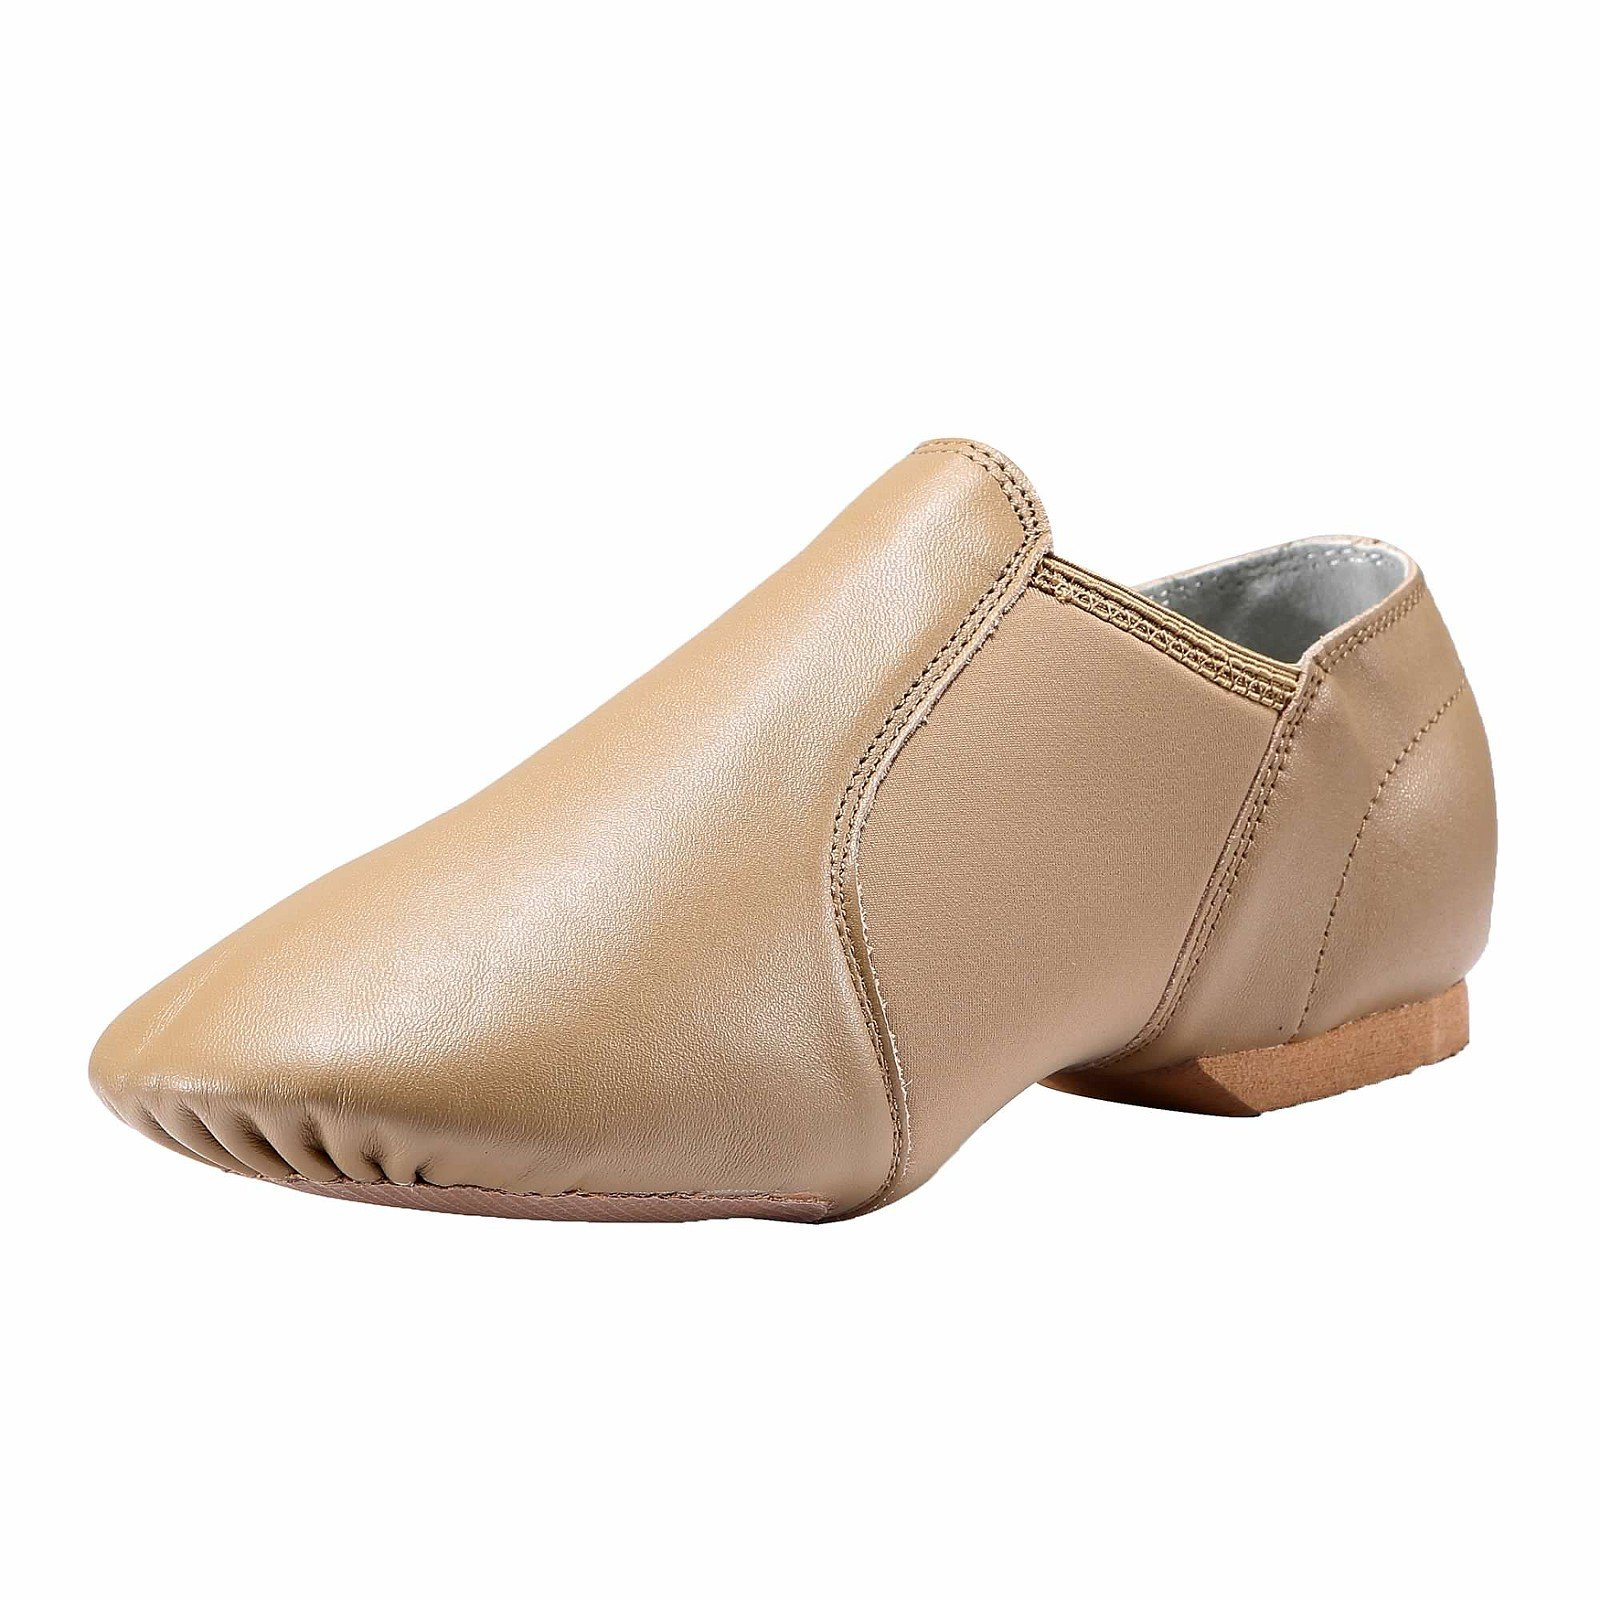 Dynadans Women's Leather Upper Slip-on Jazz Shoe Brown 8.5M